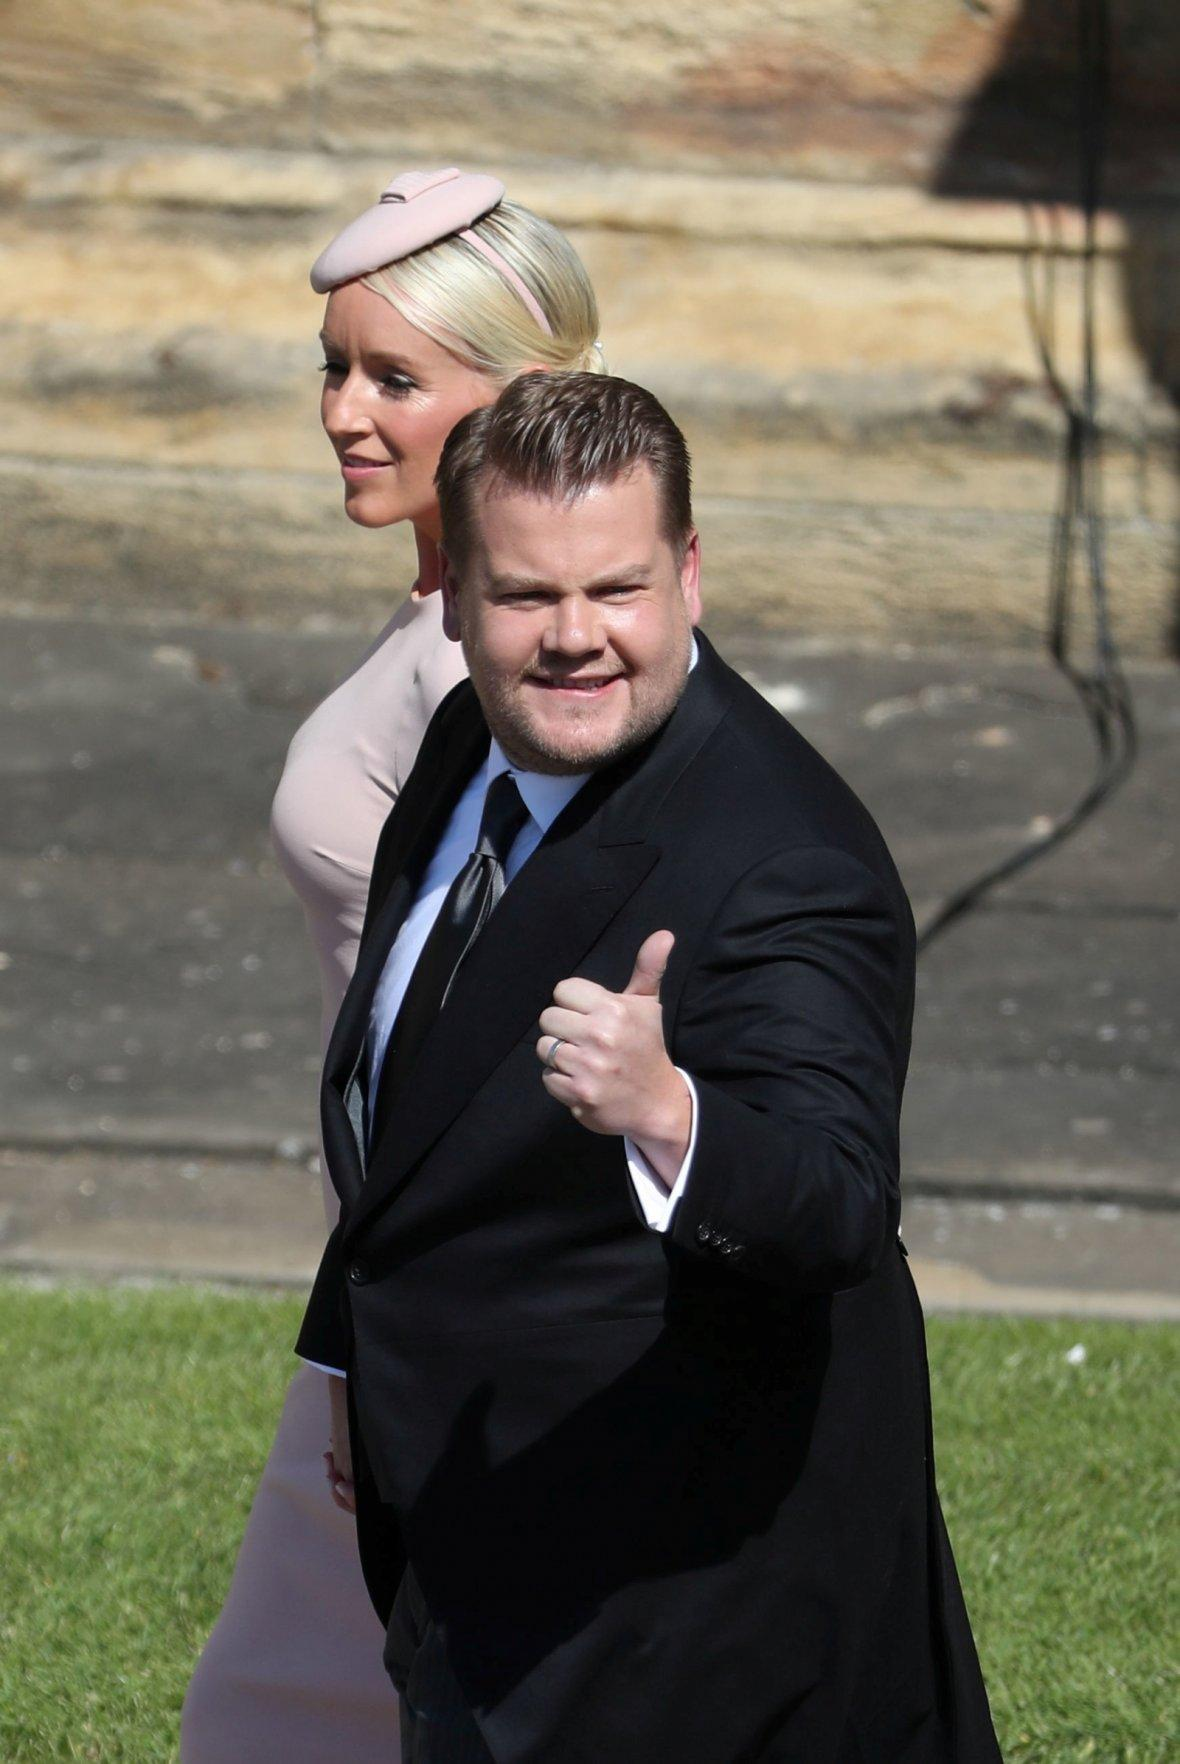 James Corden and his wife Julia Carey arrive at St George's Chapel at Windsor Castle